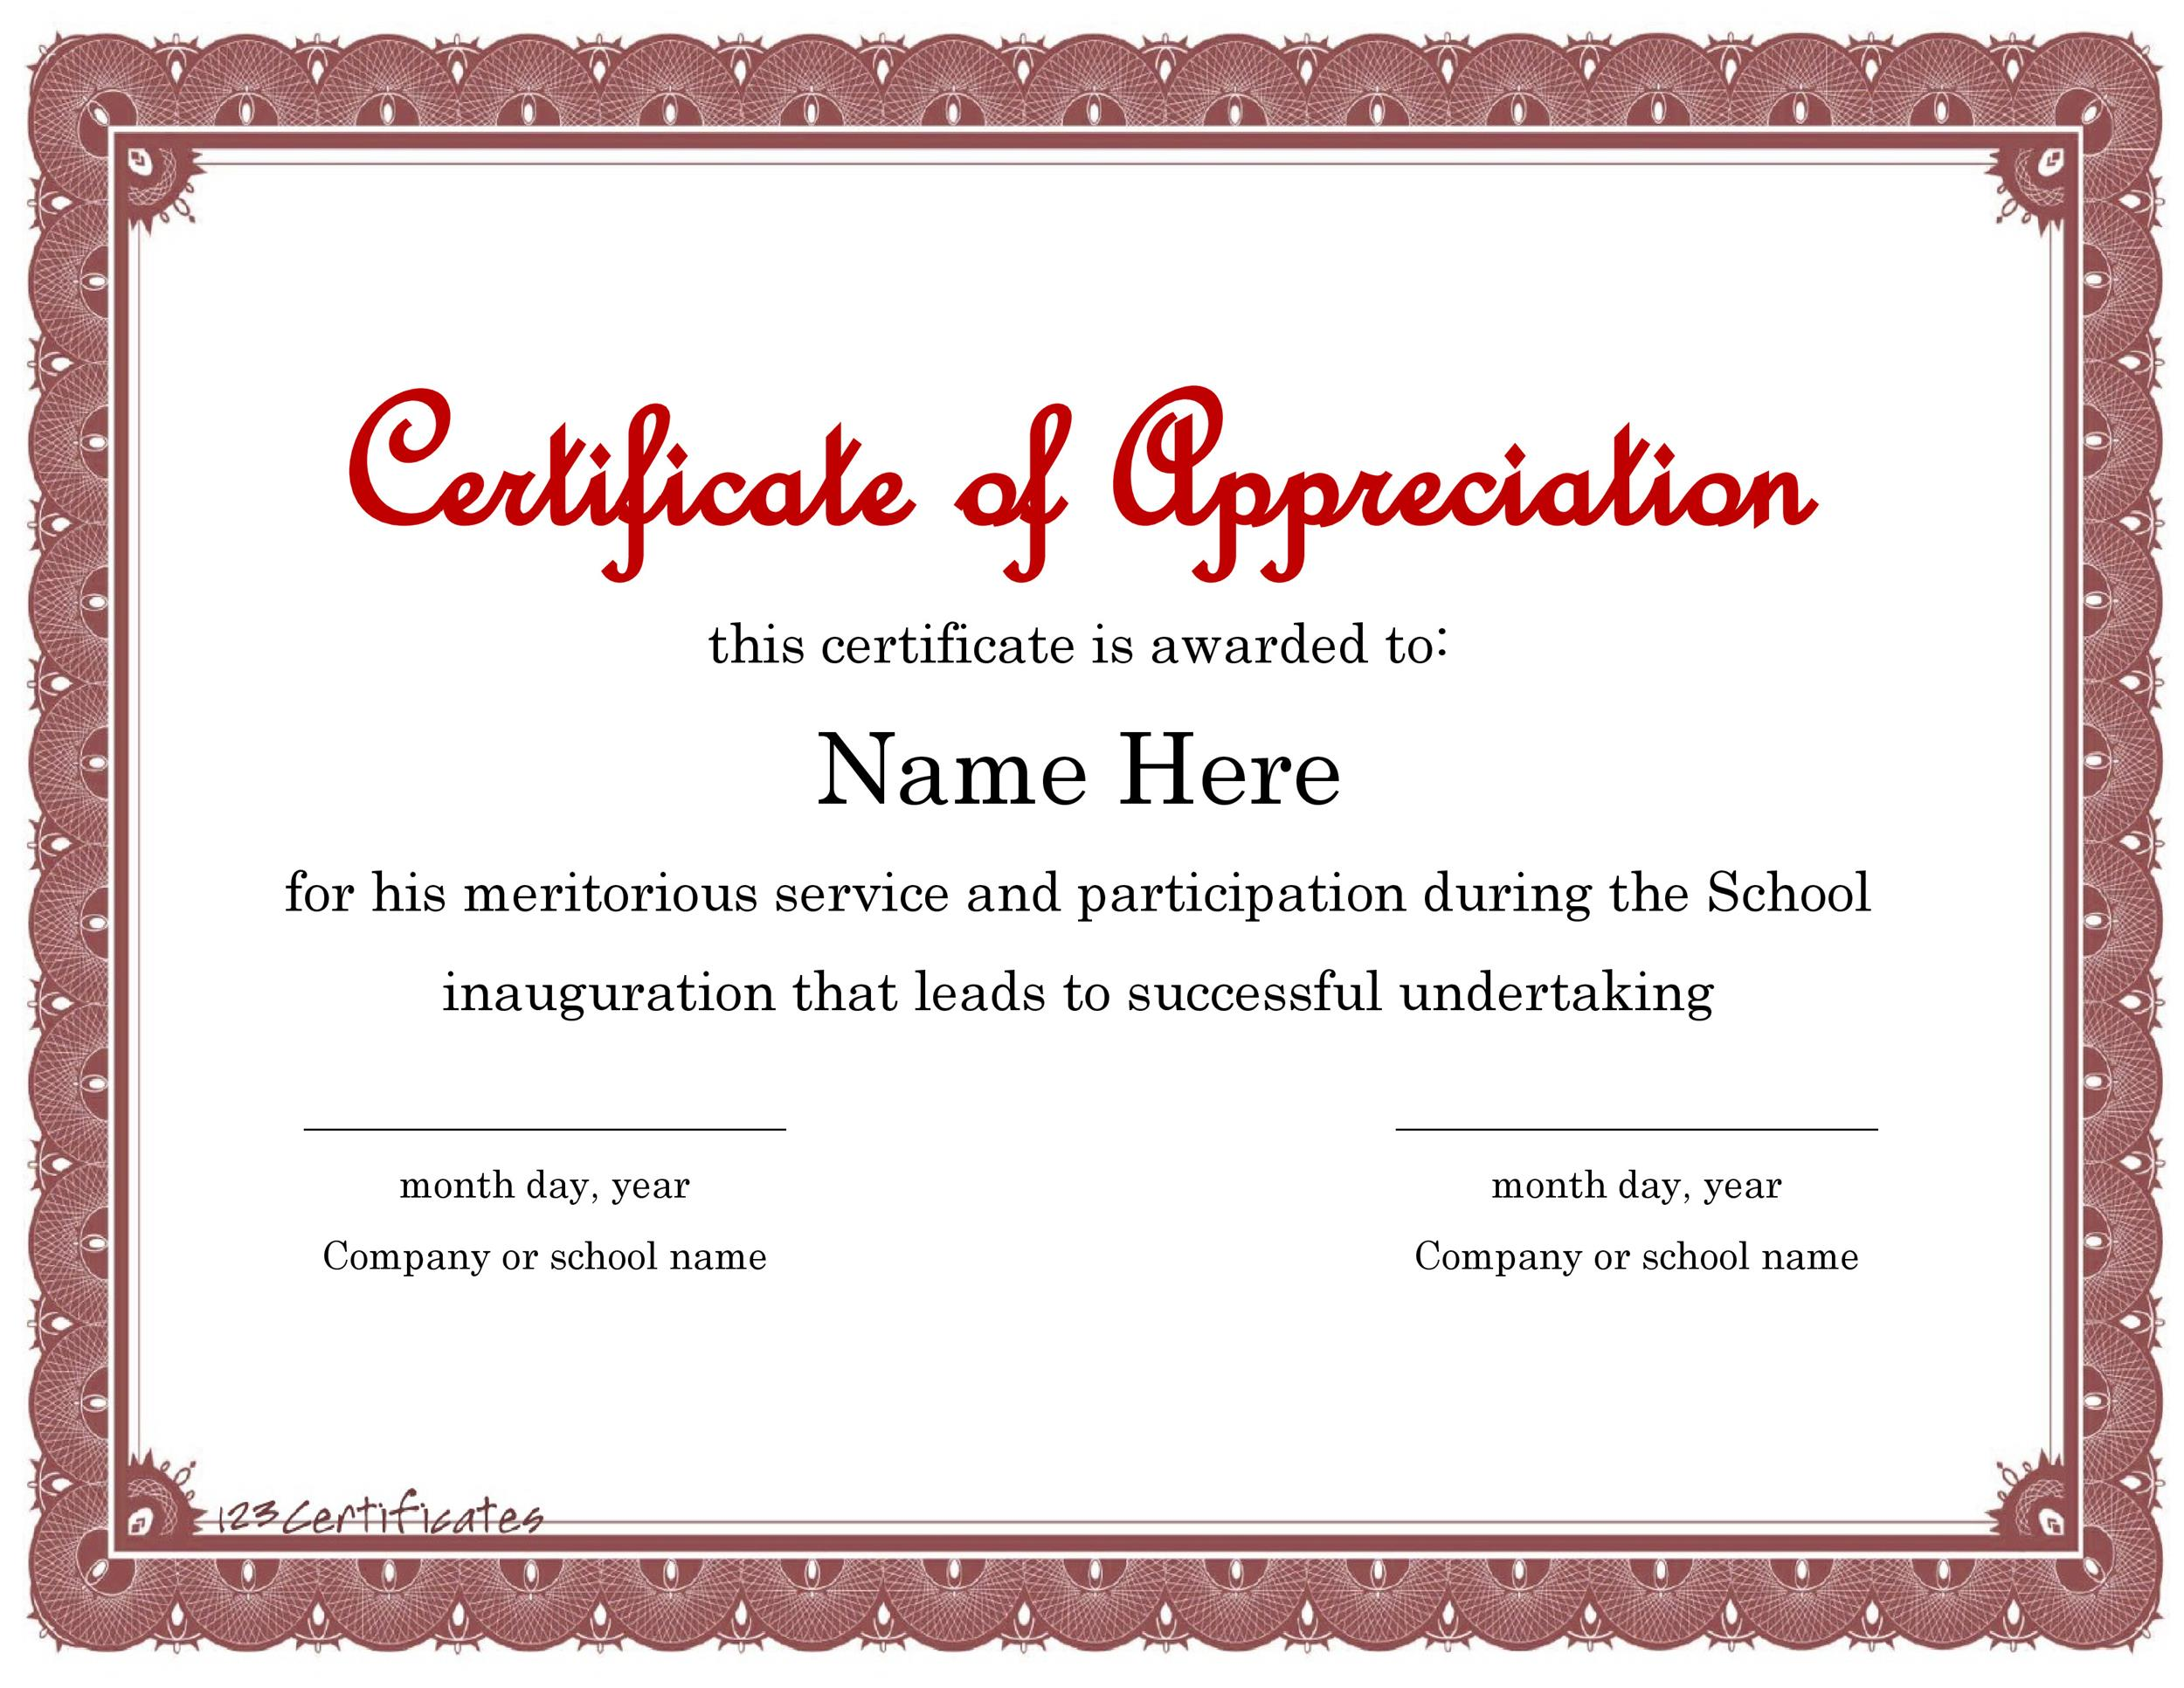 30 free certificate of appreciation templates and letters printable certificate of appreciation 01 yelopaper